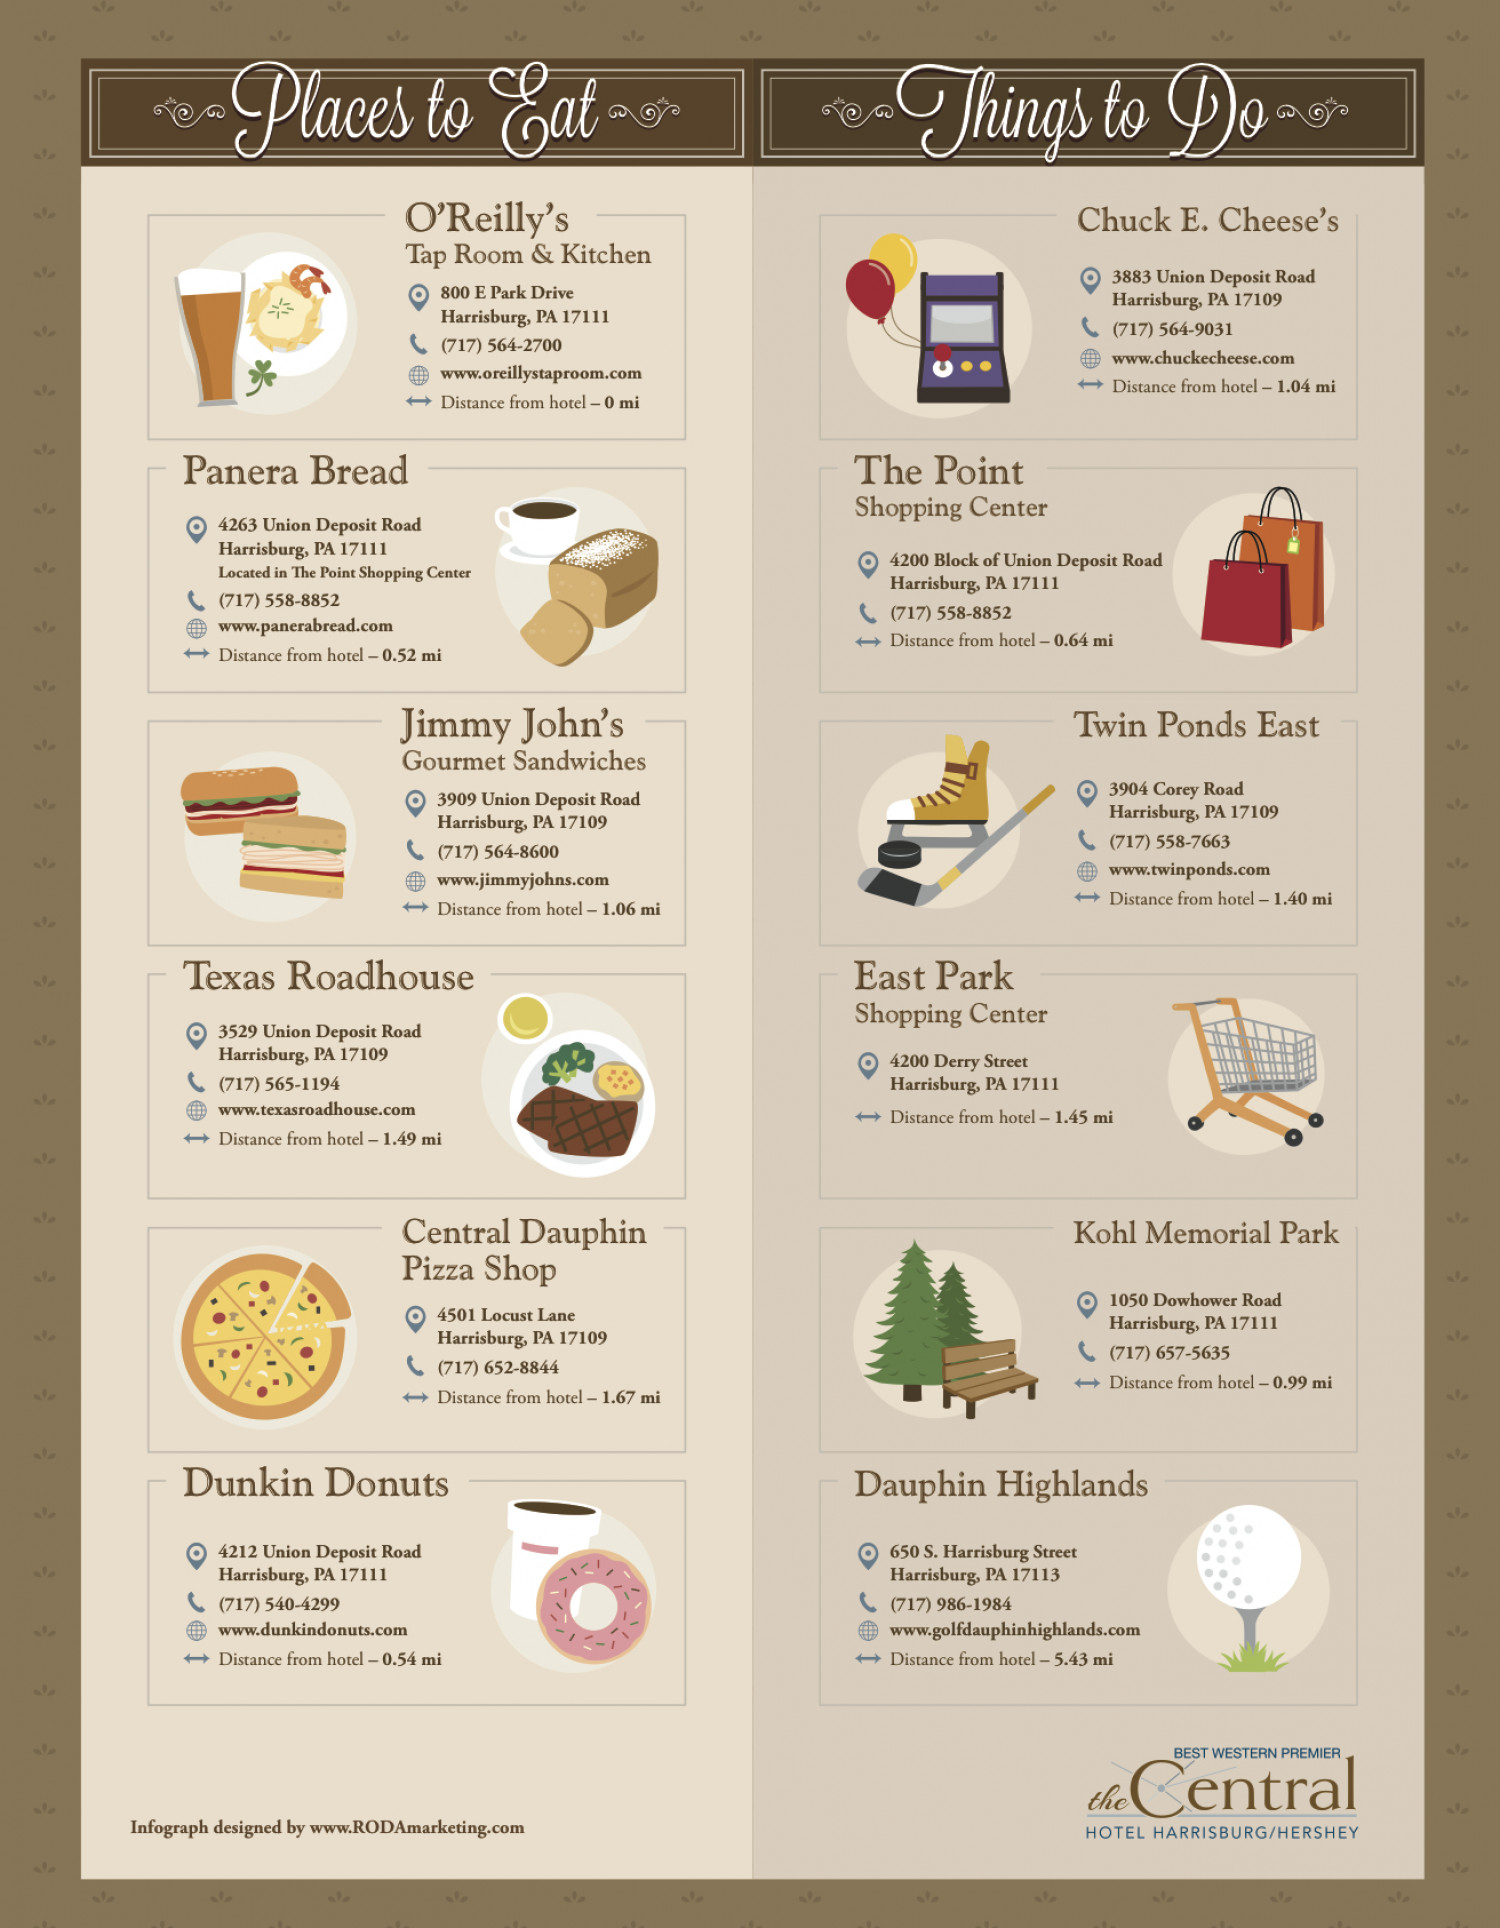 An Infograph on Places to Eat and Things to Do Around the Central Hotel Harrisburg Infographic